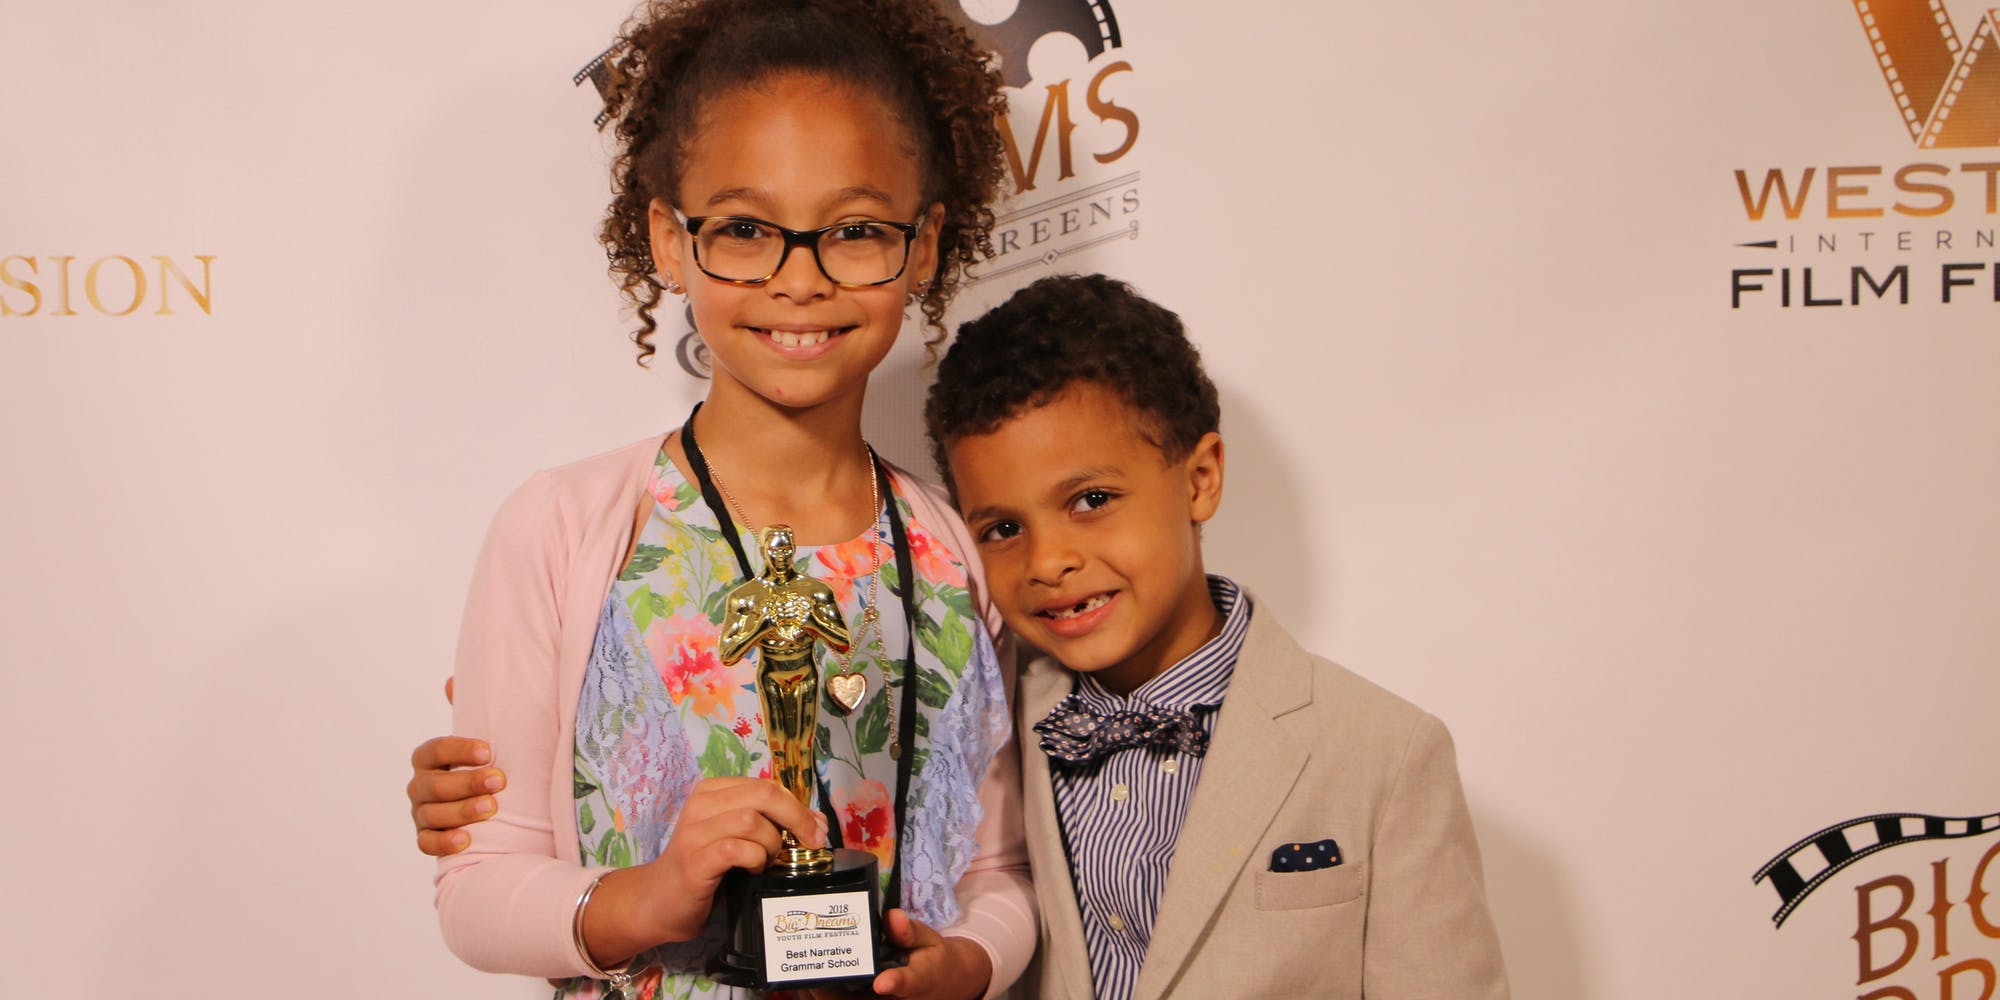 4th Annual Youth Film Festival - Join us on the red carpet at this year's 4th Annual Big Dreams Youth Film Festival! Big Dreams Youth Film Festival, a Big Dreams & Silver Screens production and formerly